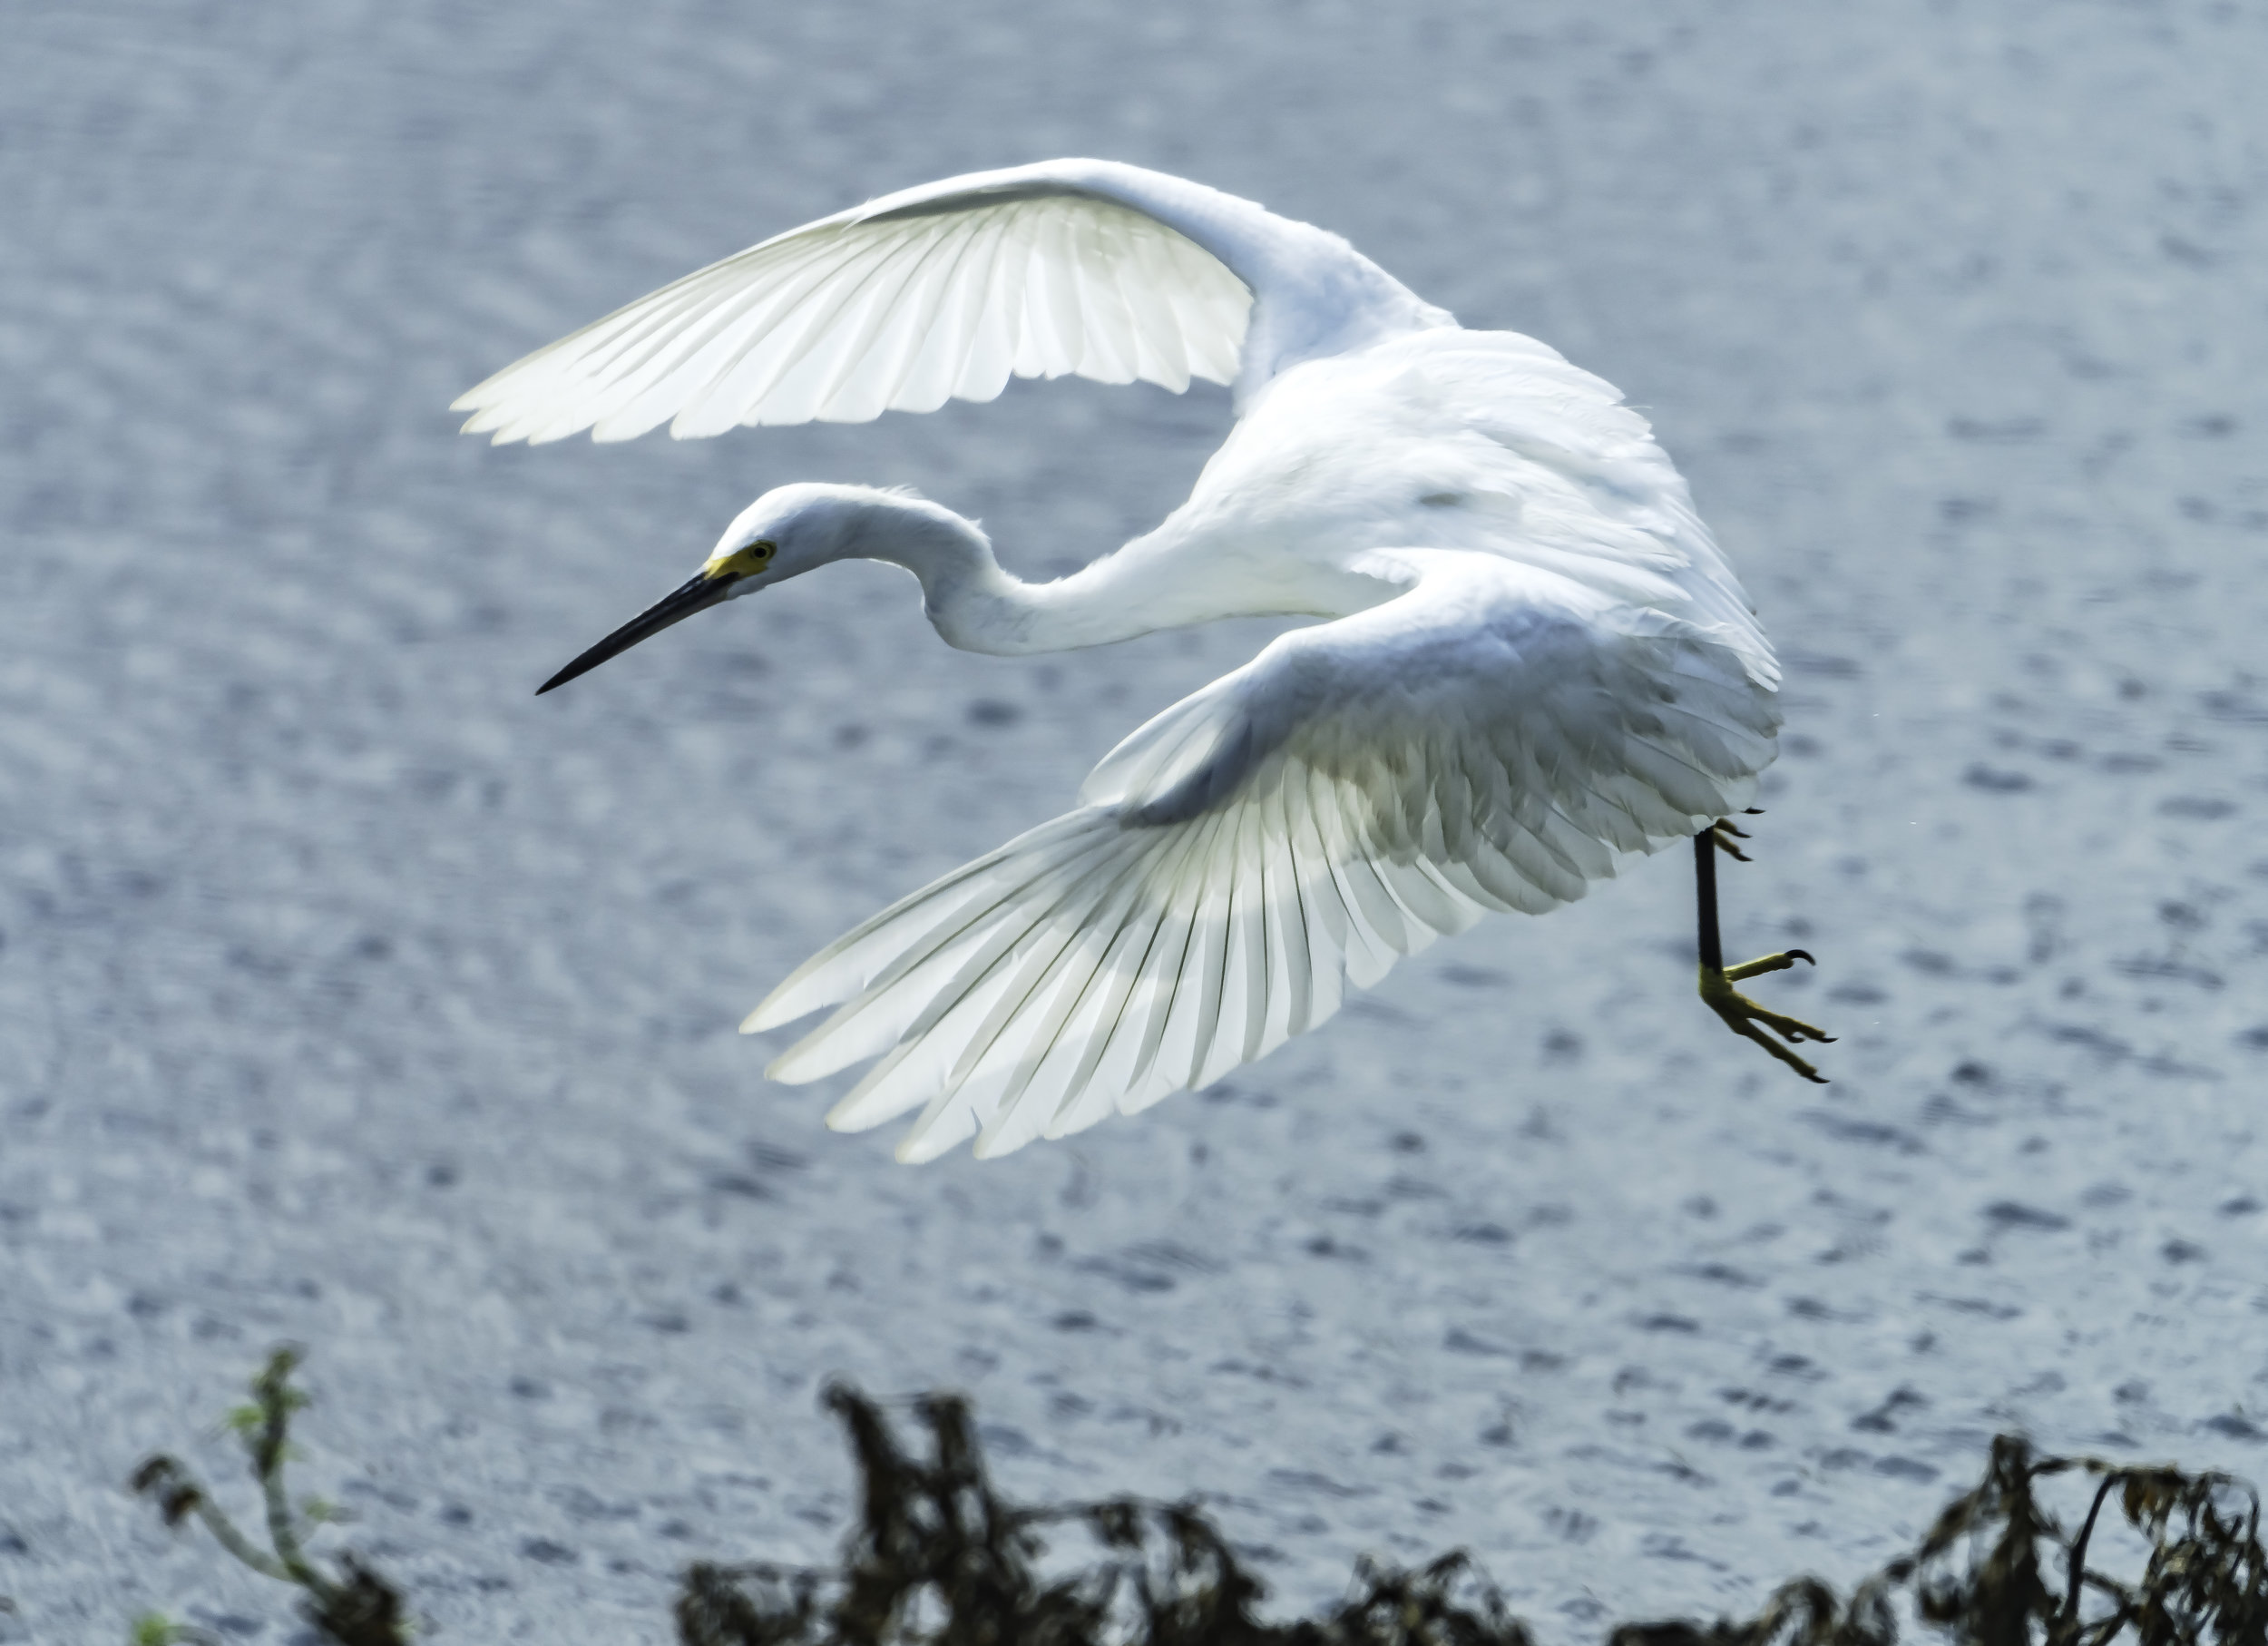 Flying Great Egret, Costa Rica